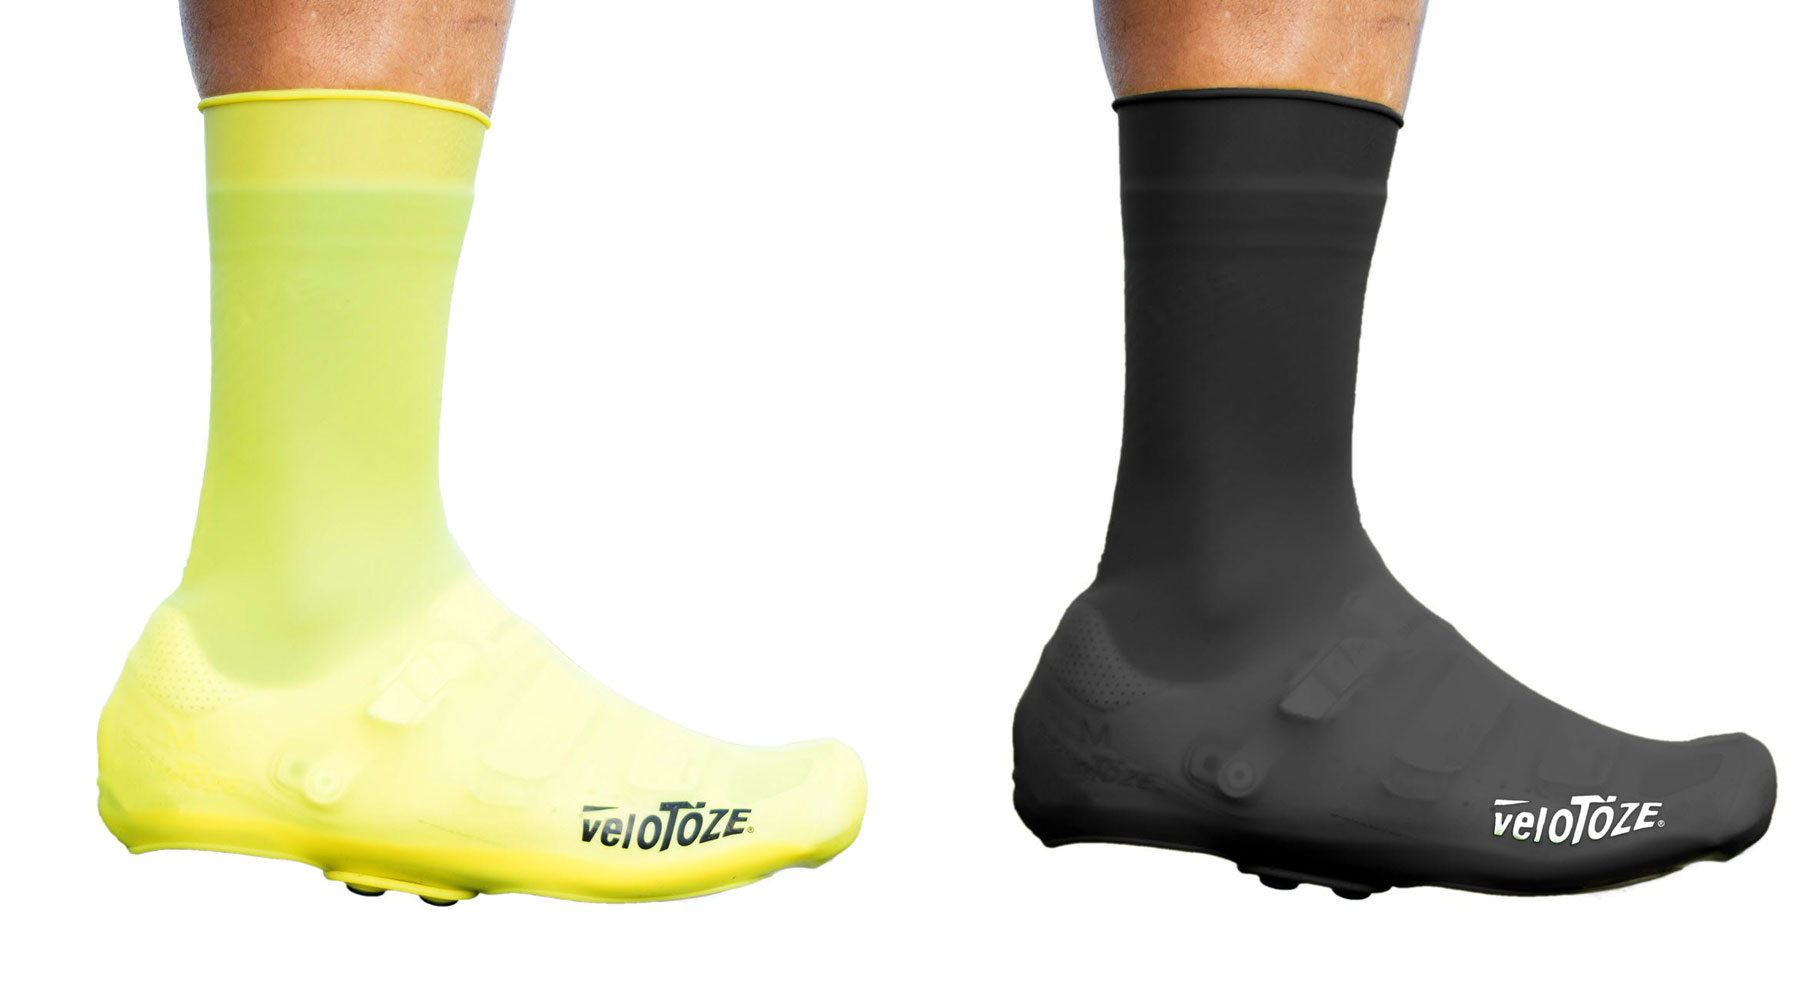 VeloToze Tall Shoe Covers Silicone, easy on and off windproof waterproof synthetic rubber road bike shoe covers with snaps, colors